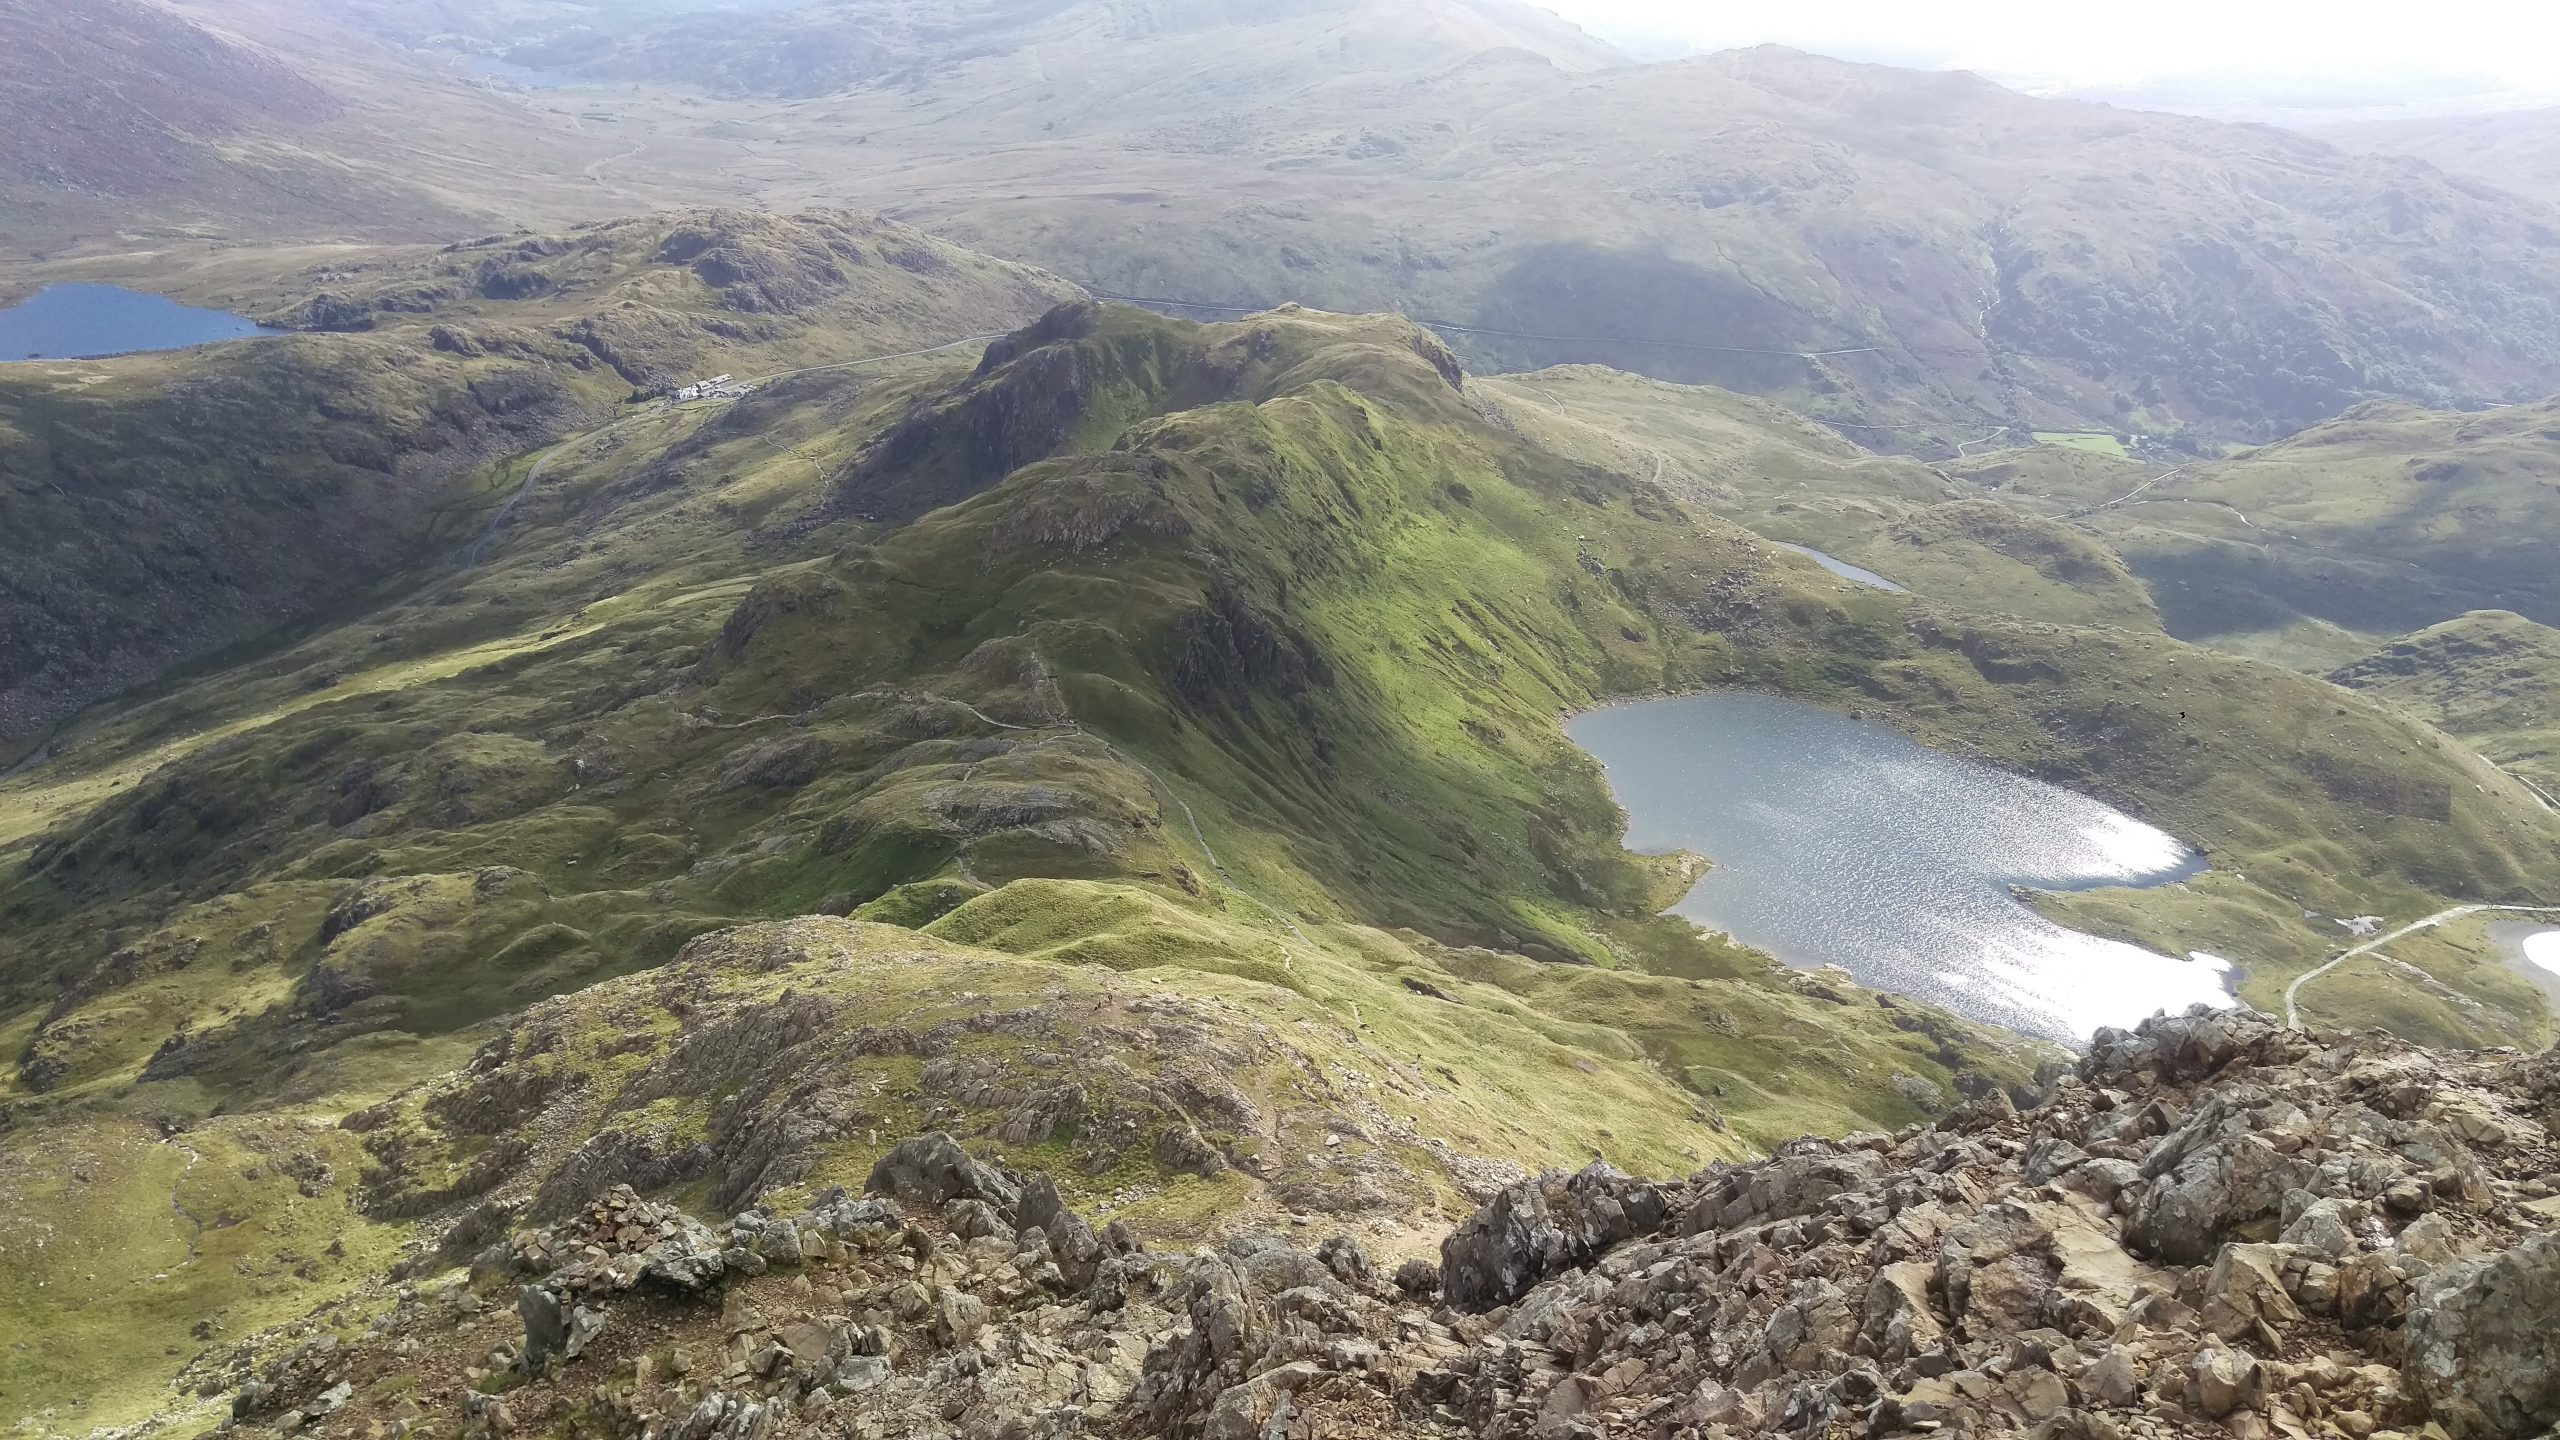 The ascent to Grib Goch